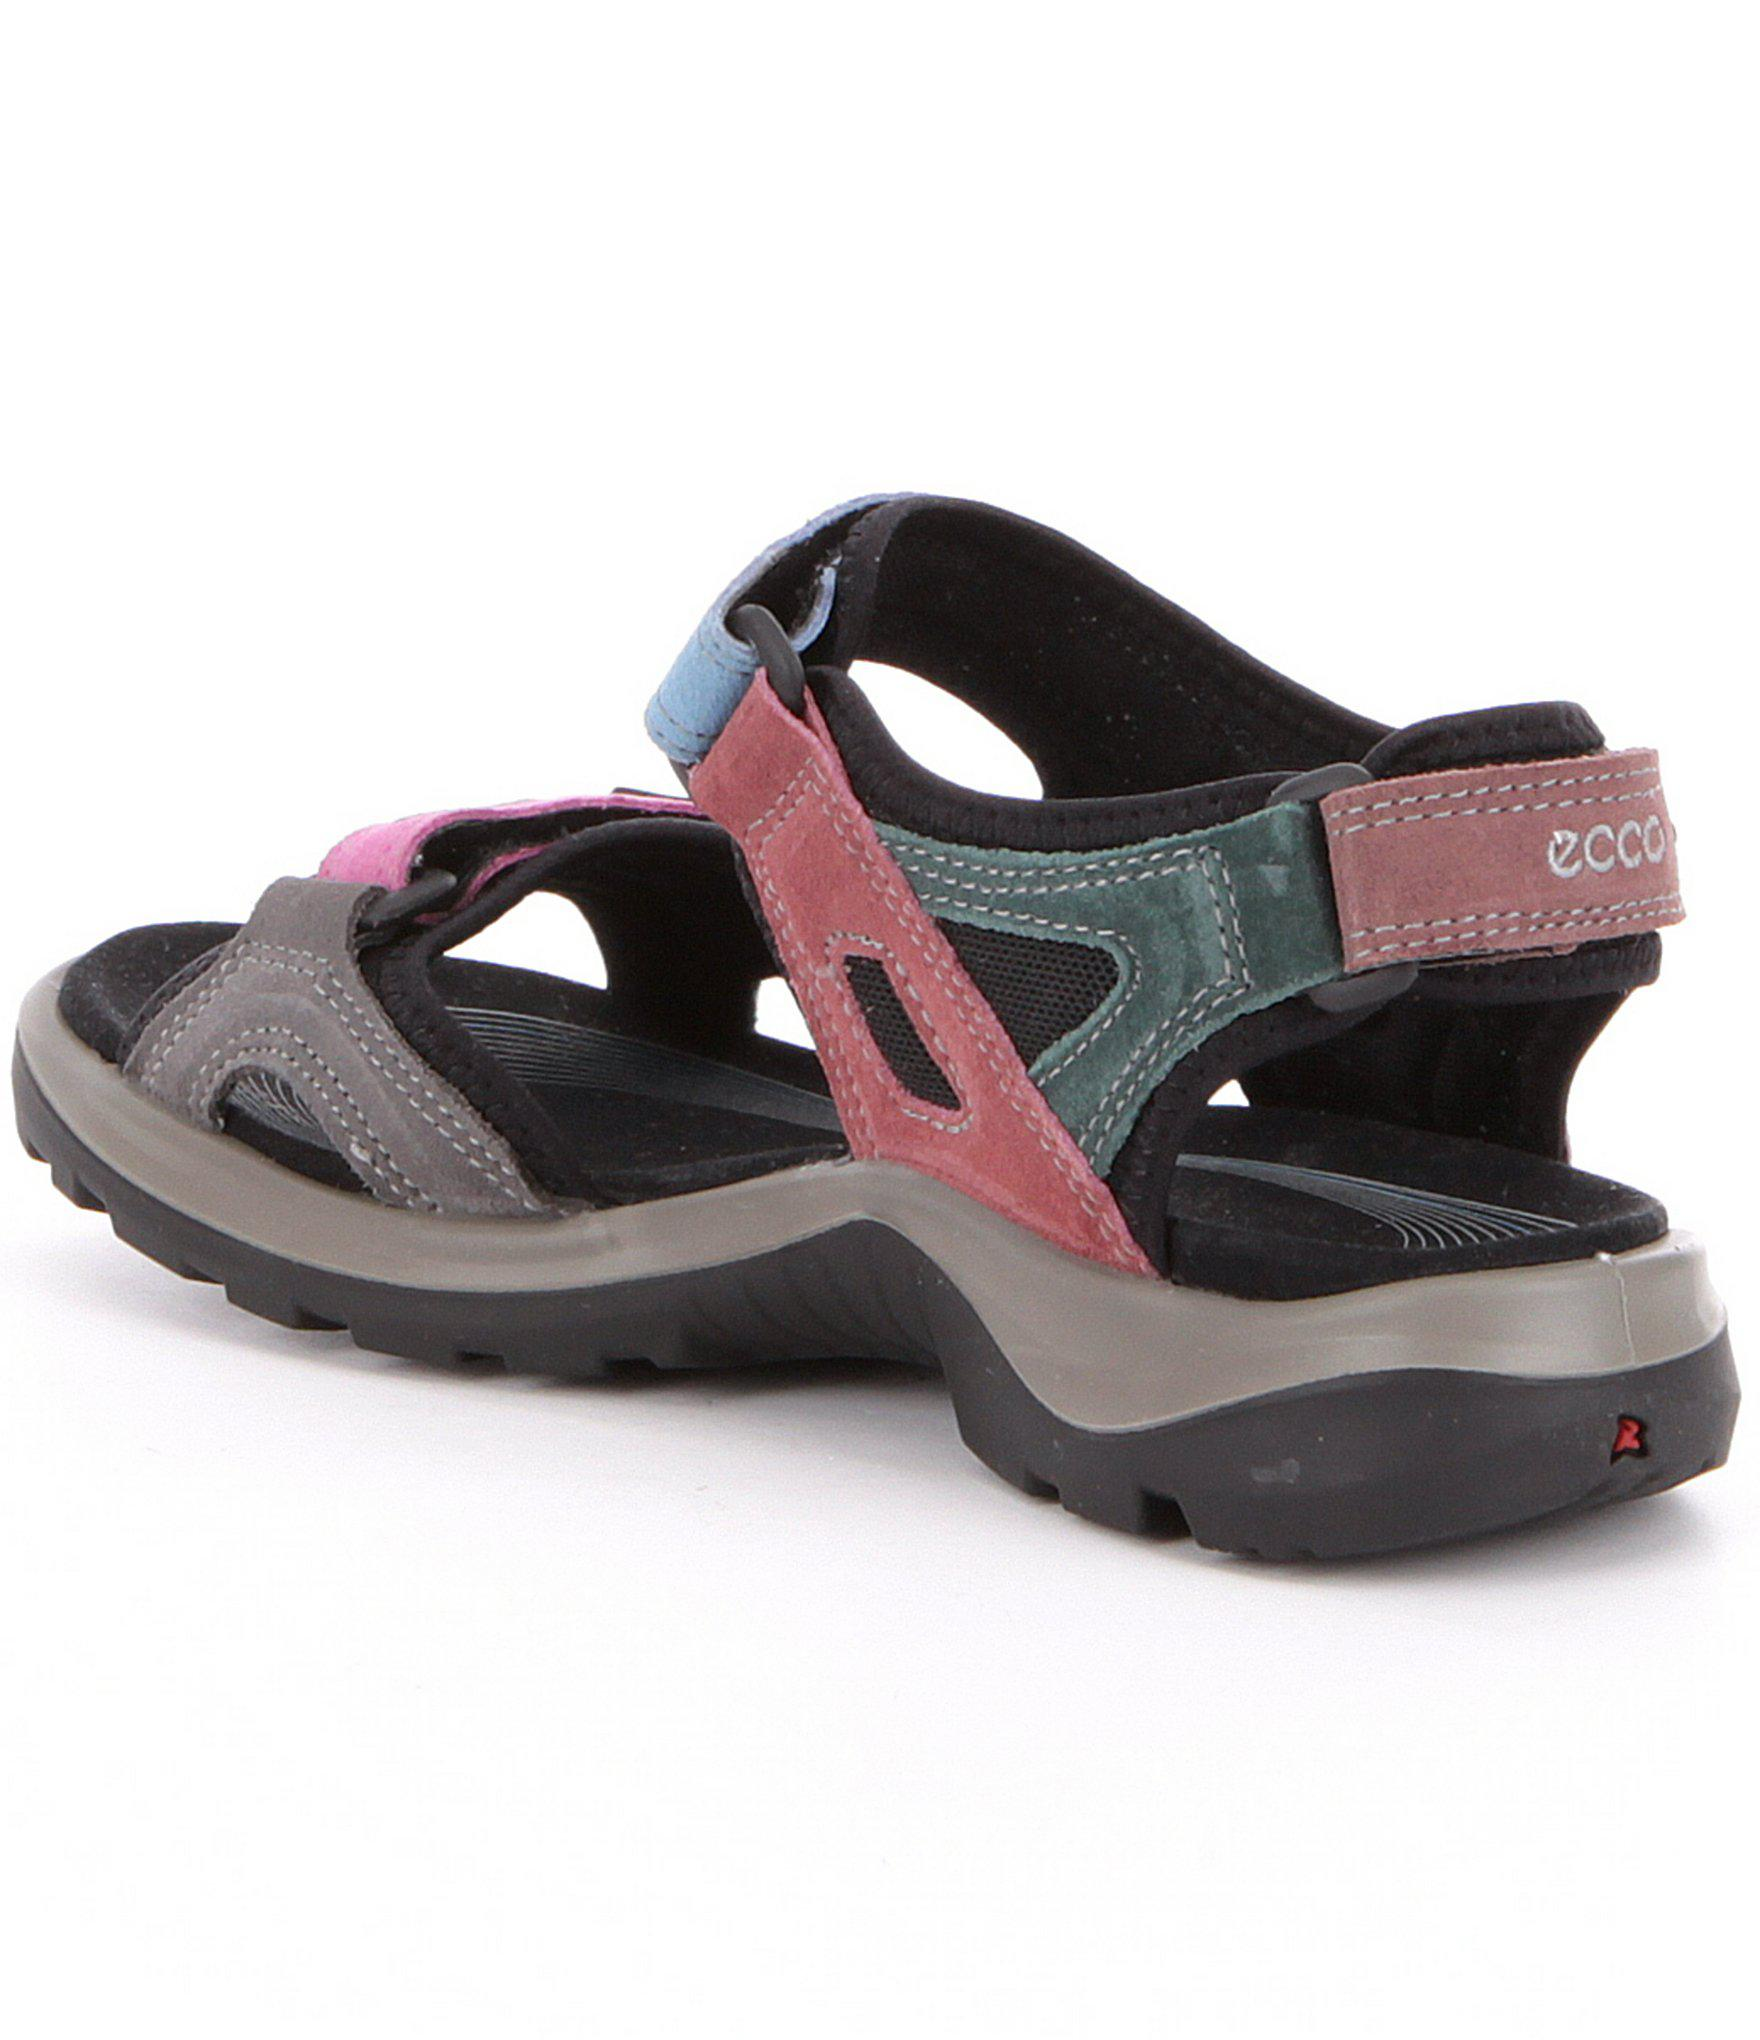 f762511eeed5 Lyst - Ecco Womens Yucatan Offroad Multi Colored Banded Outdoor Sandals